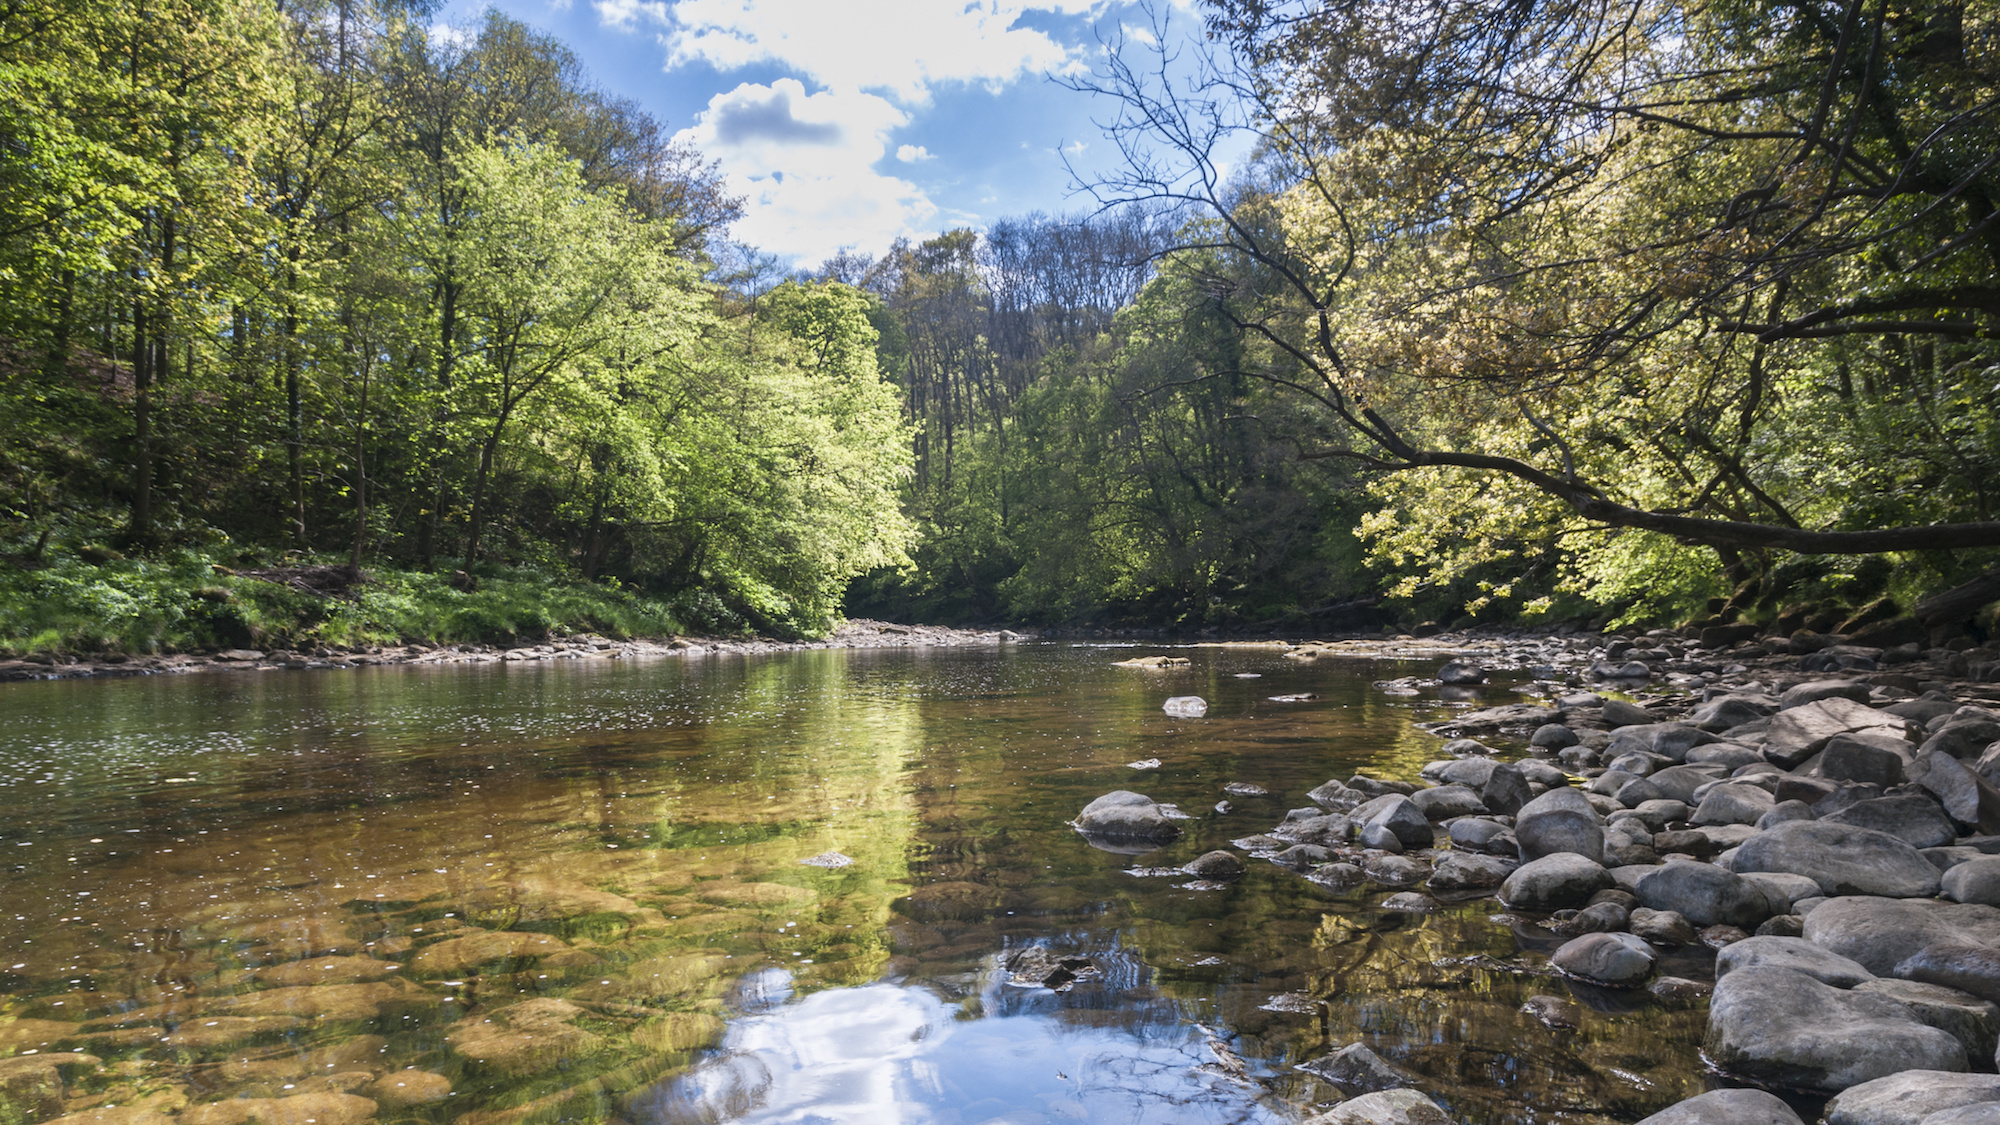 River Ure at Grewelthorpe flowing through Hackfall Wood, North Yorkshire, England